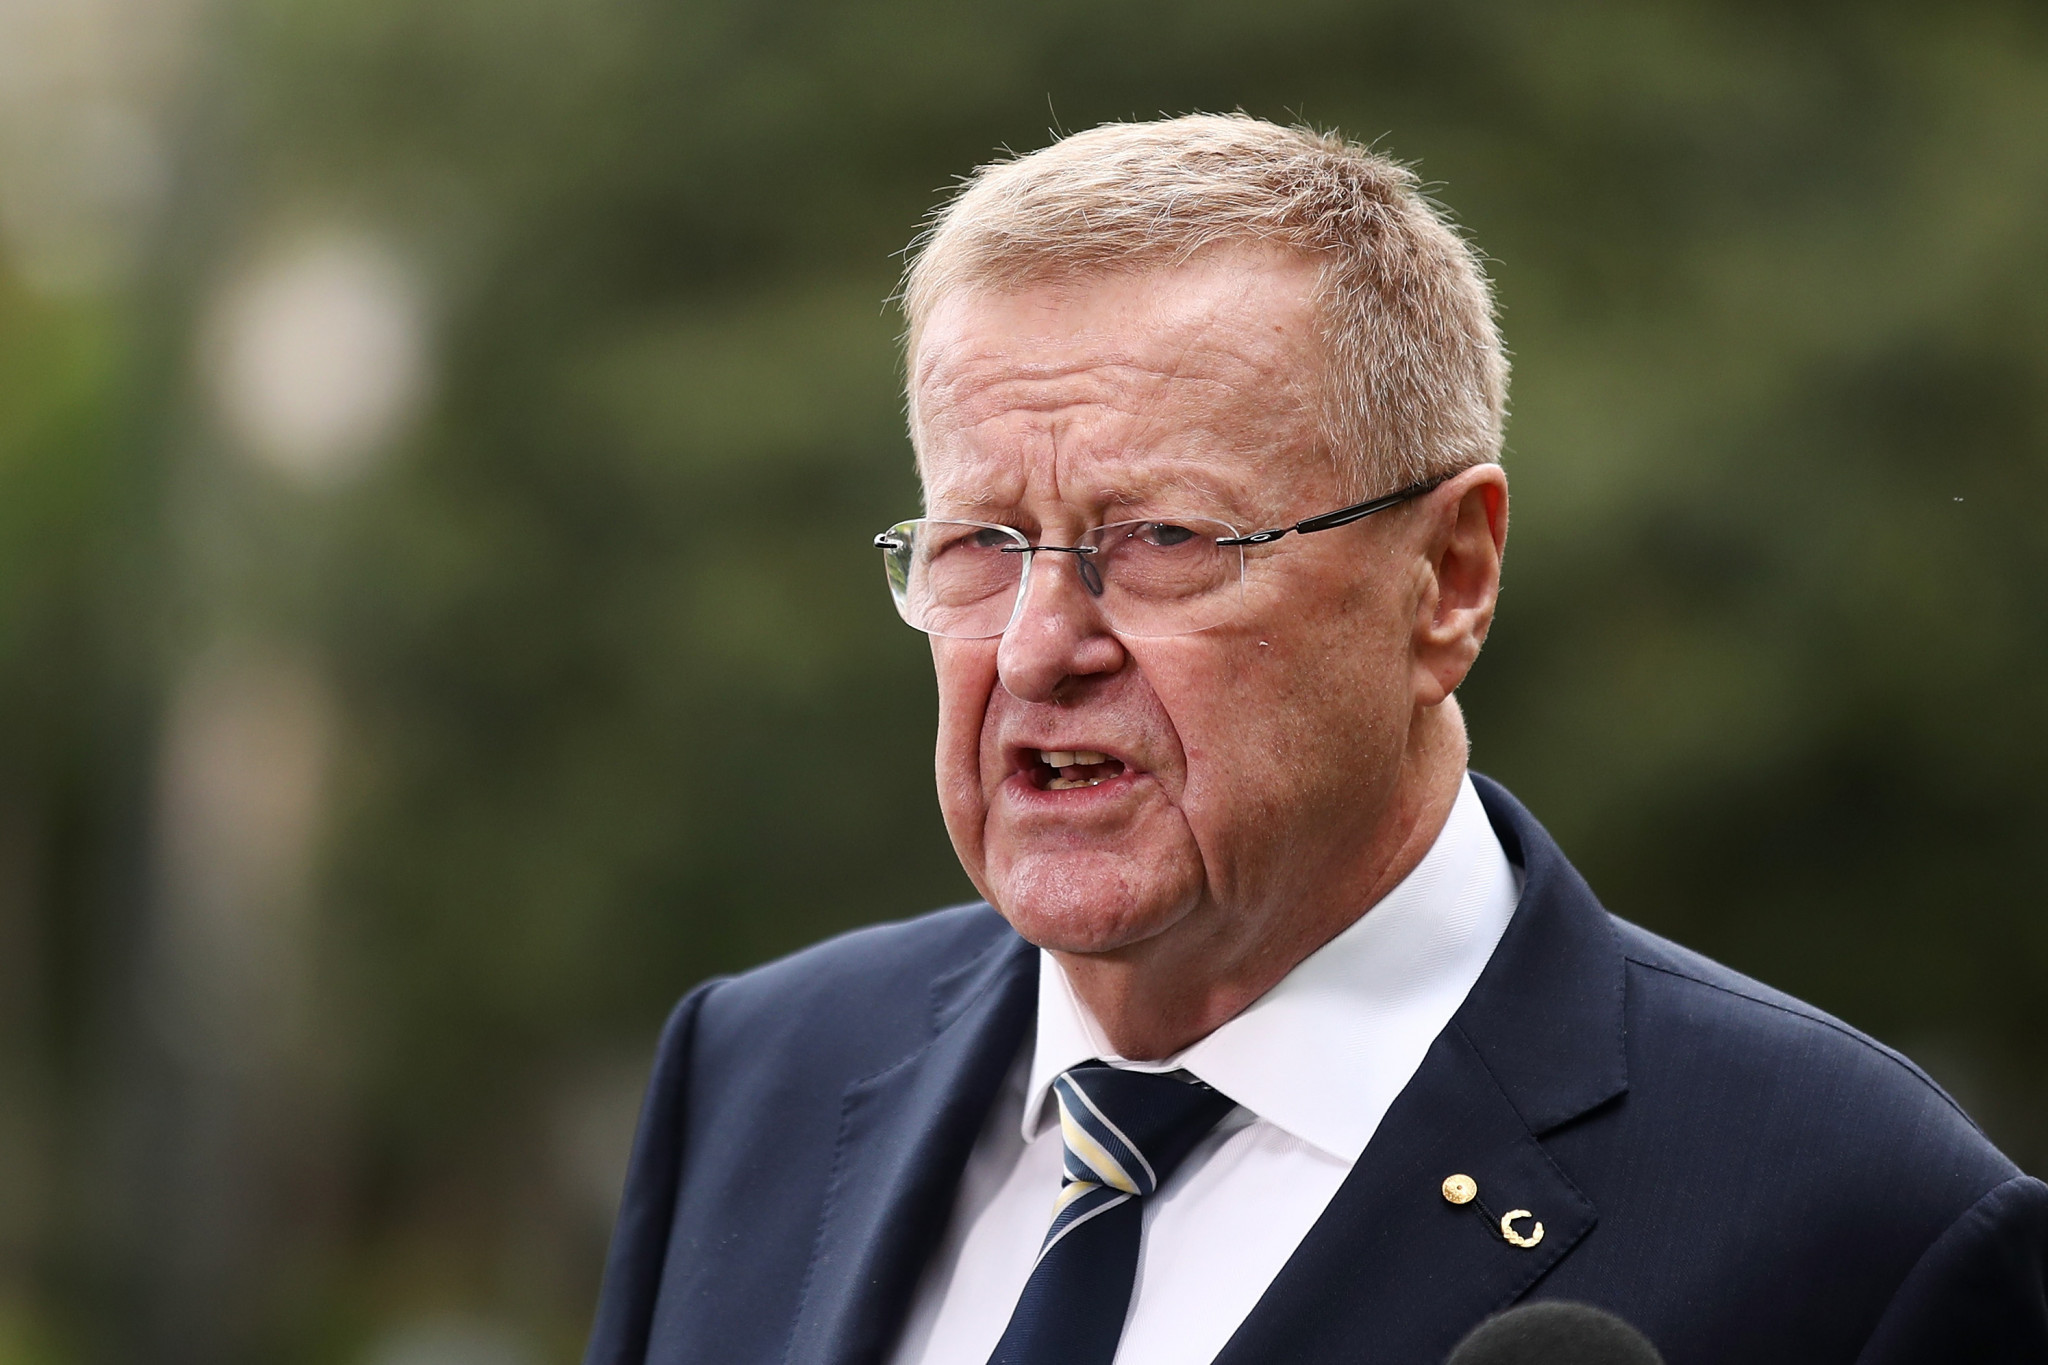 John Coates believes the struggle of some countries to control coronavirus poses problems for Tokyo 2020 ©Getty Images